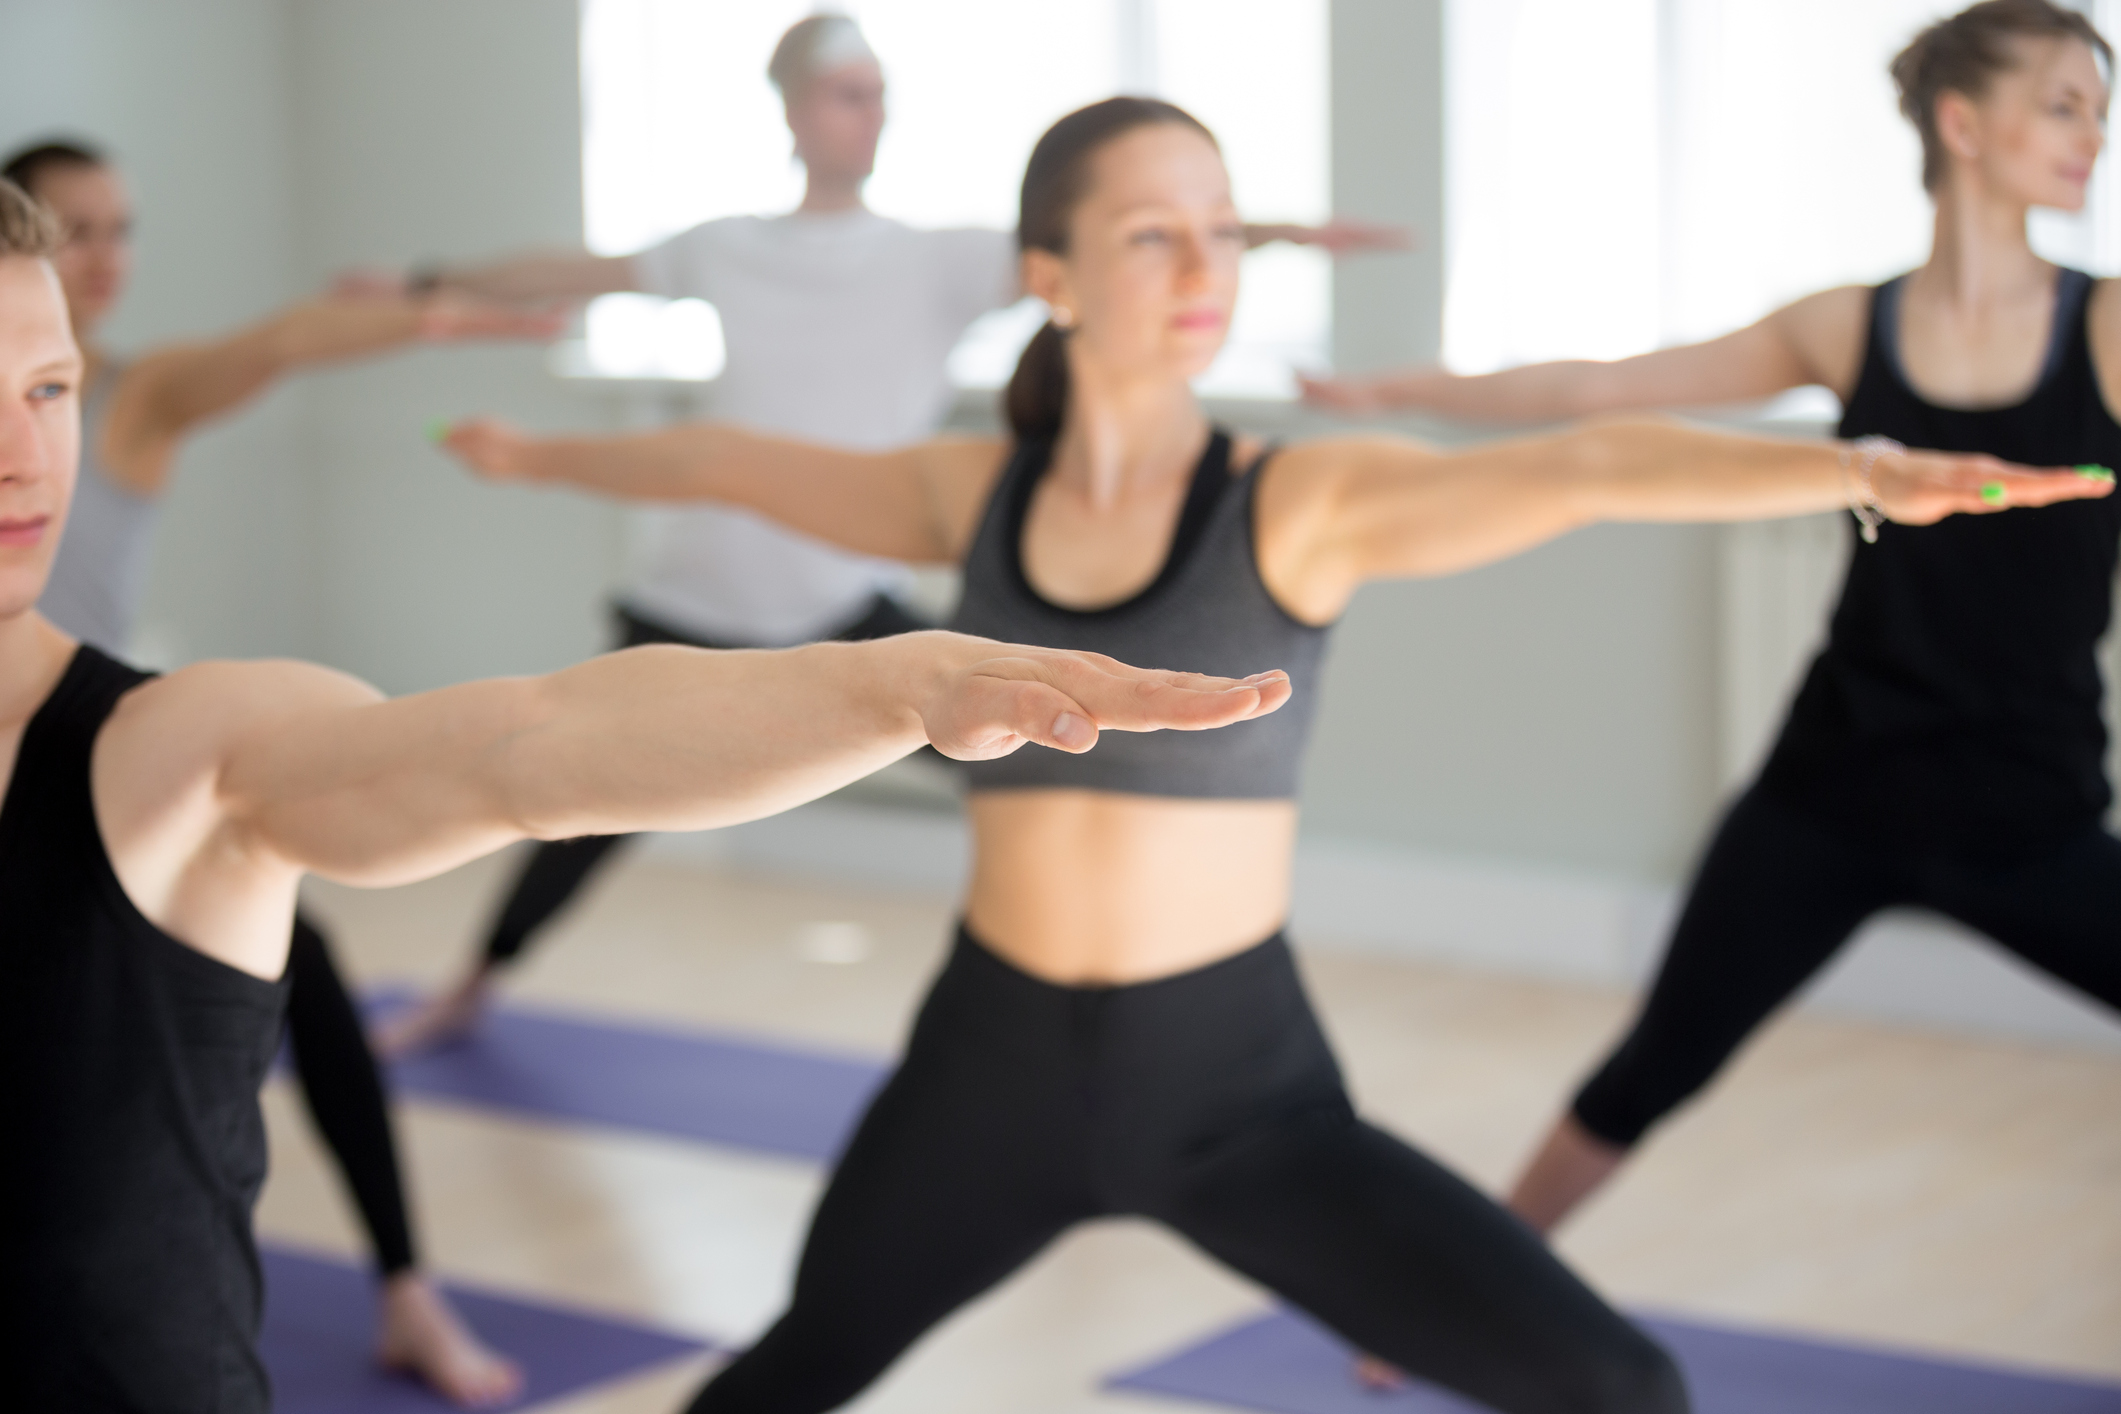 Adult studio classes - Tuesdays 6PM. This week (8/14) enjoy an active vinyasa class with Heidi Rasmussen. Suitable for all levels. View schedule.